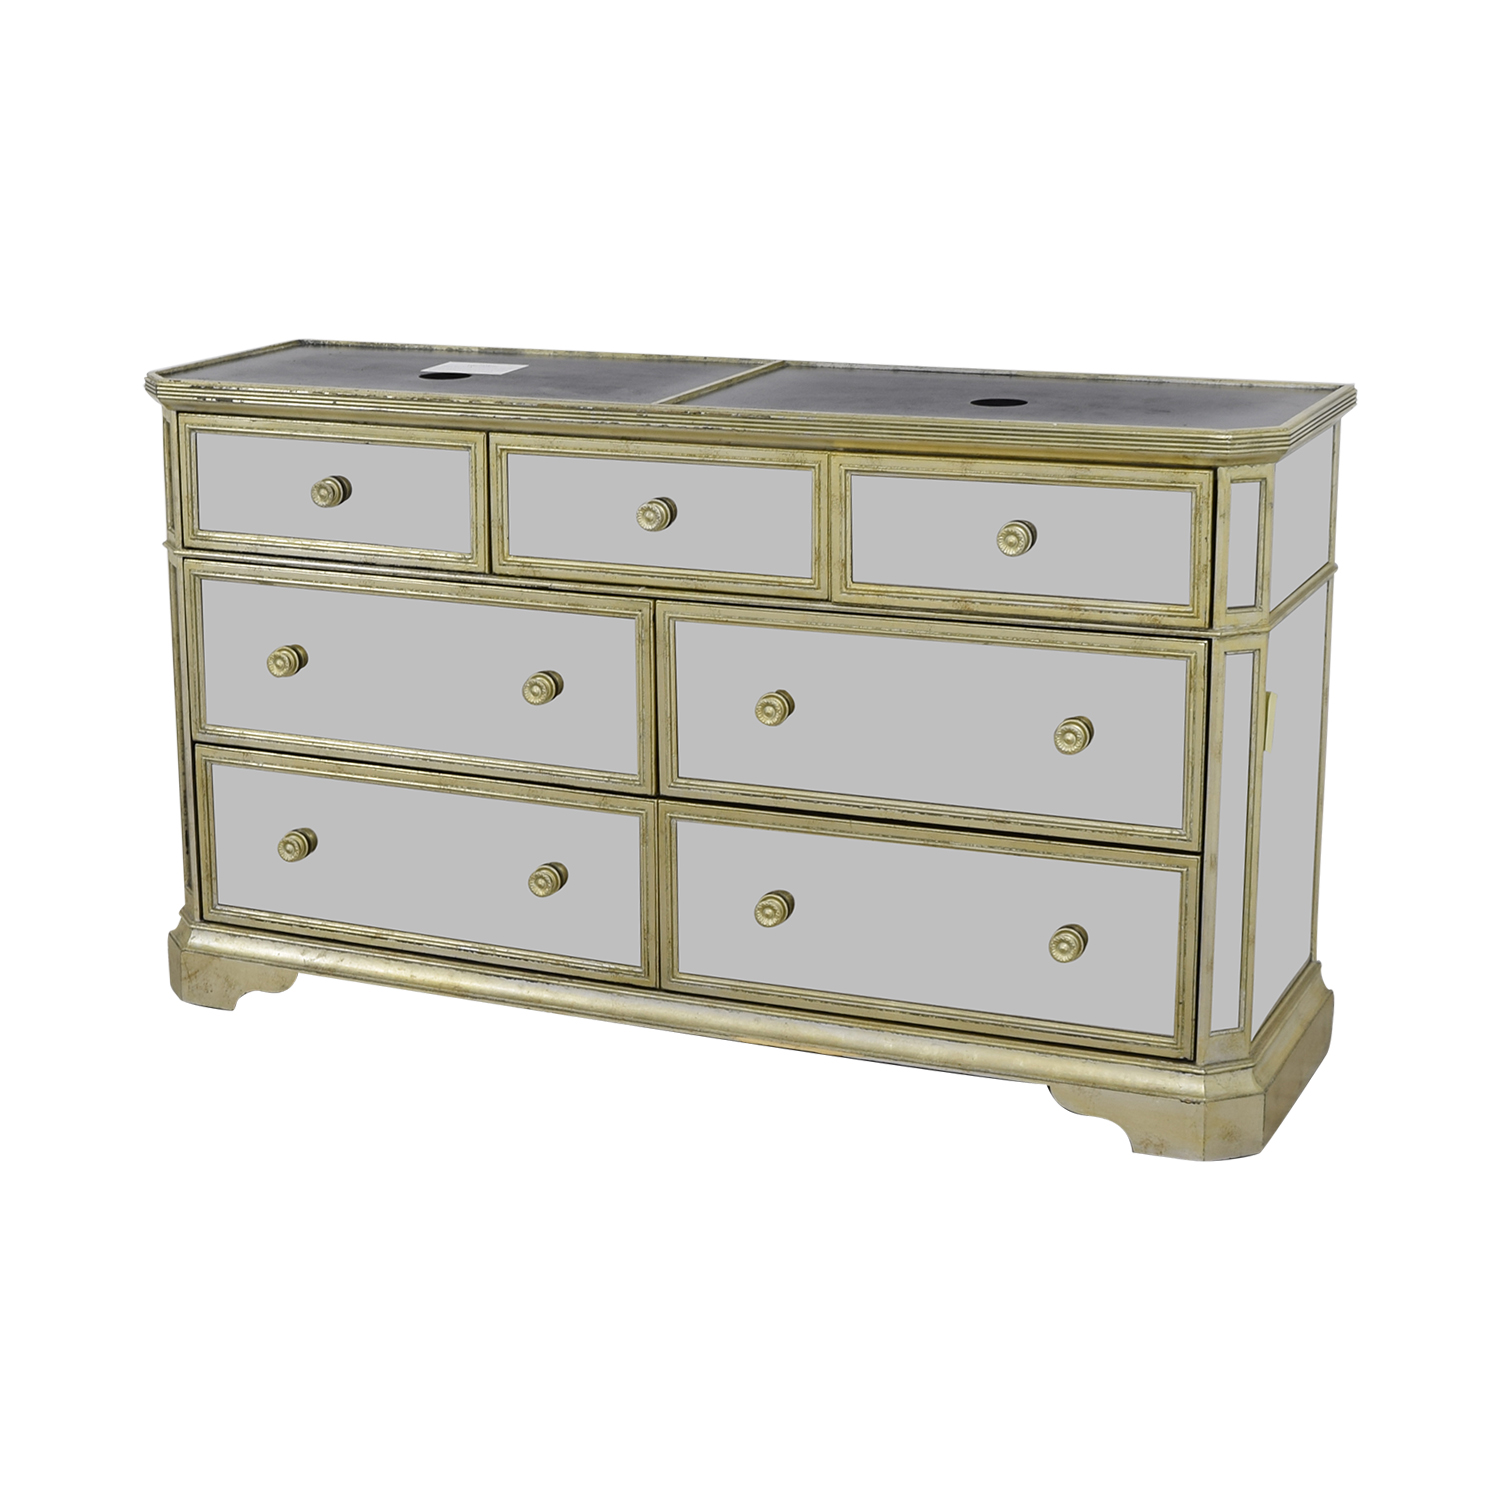 Marais Marais Seven-Drawer Mirrored Dresser Storage